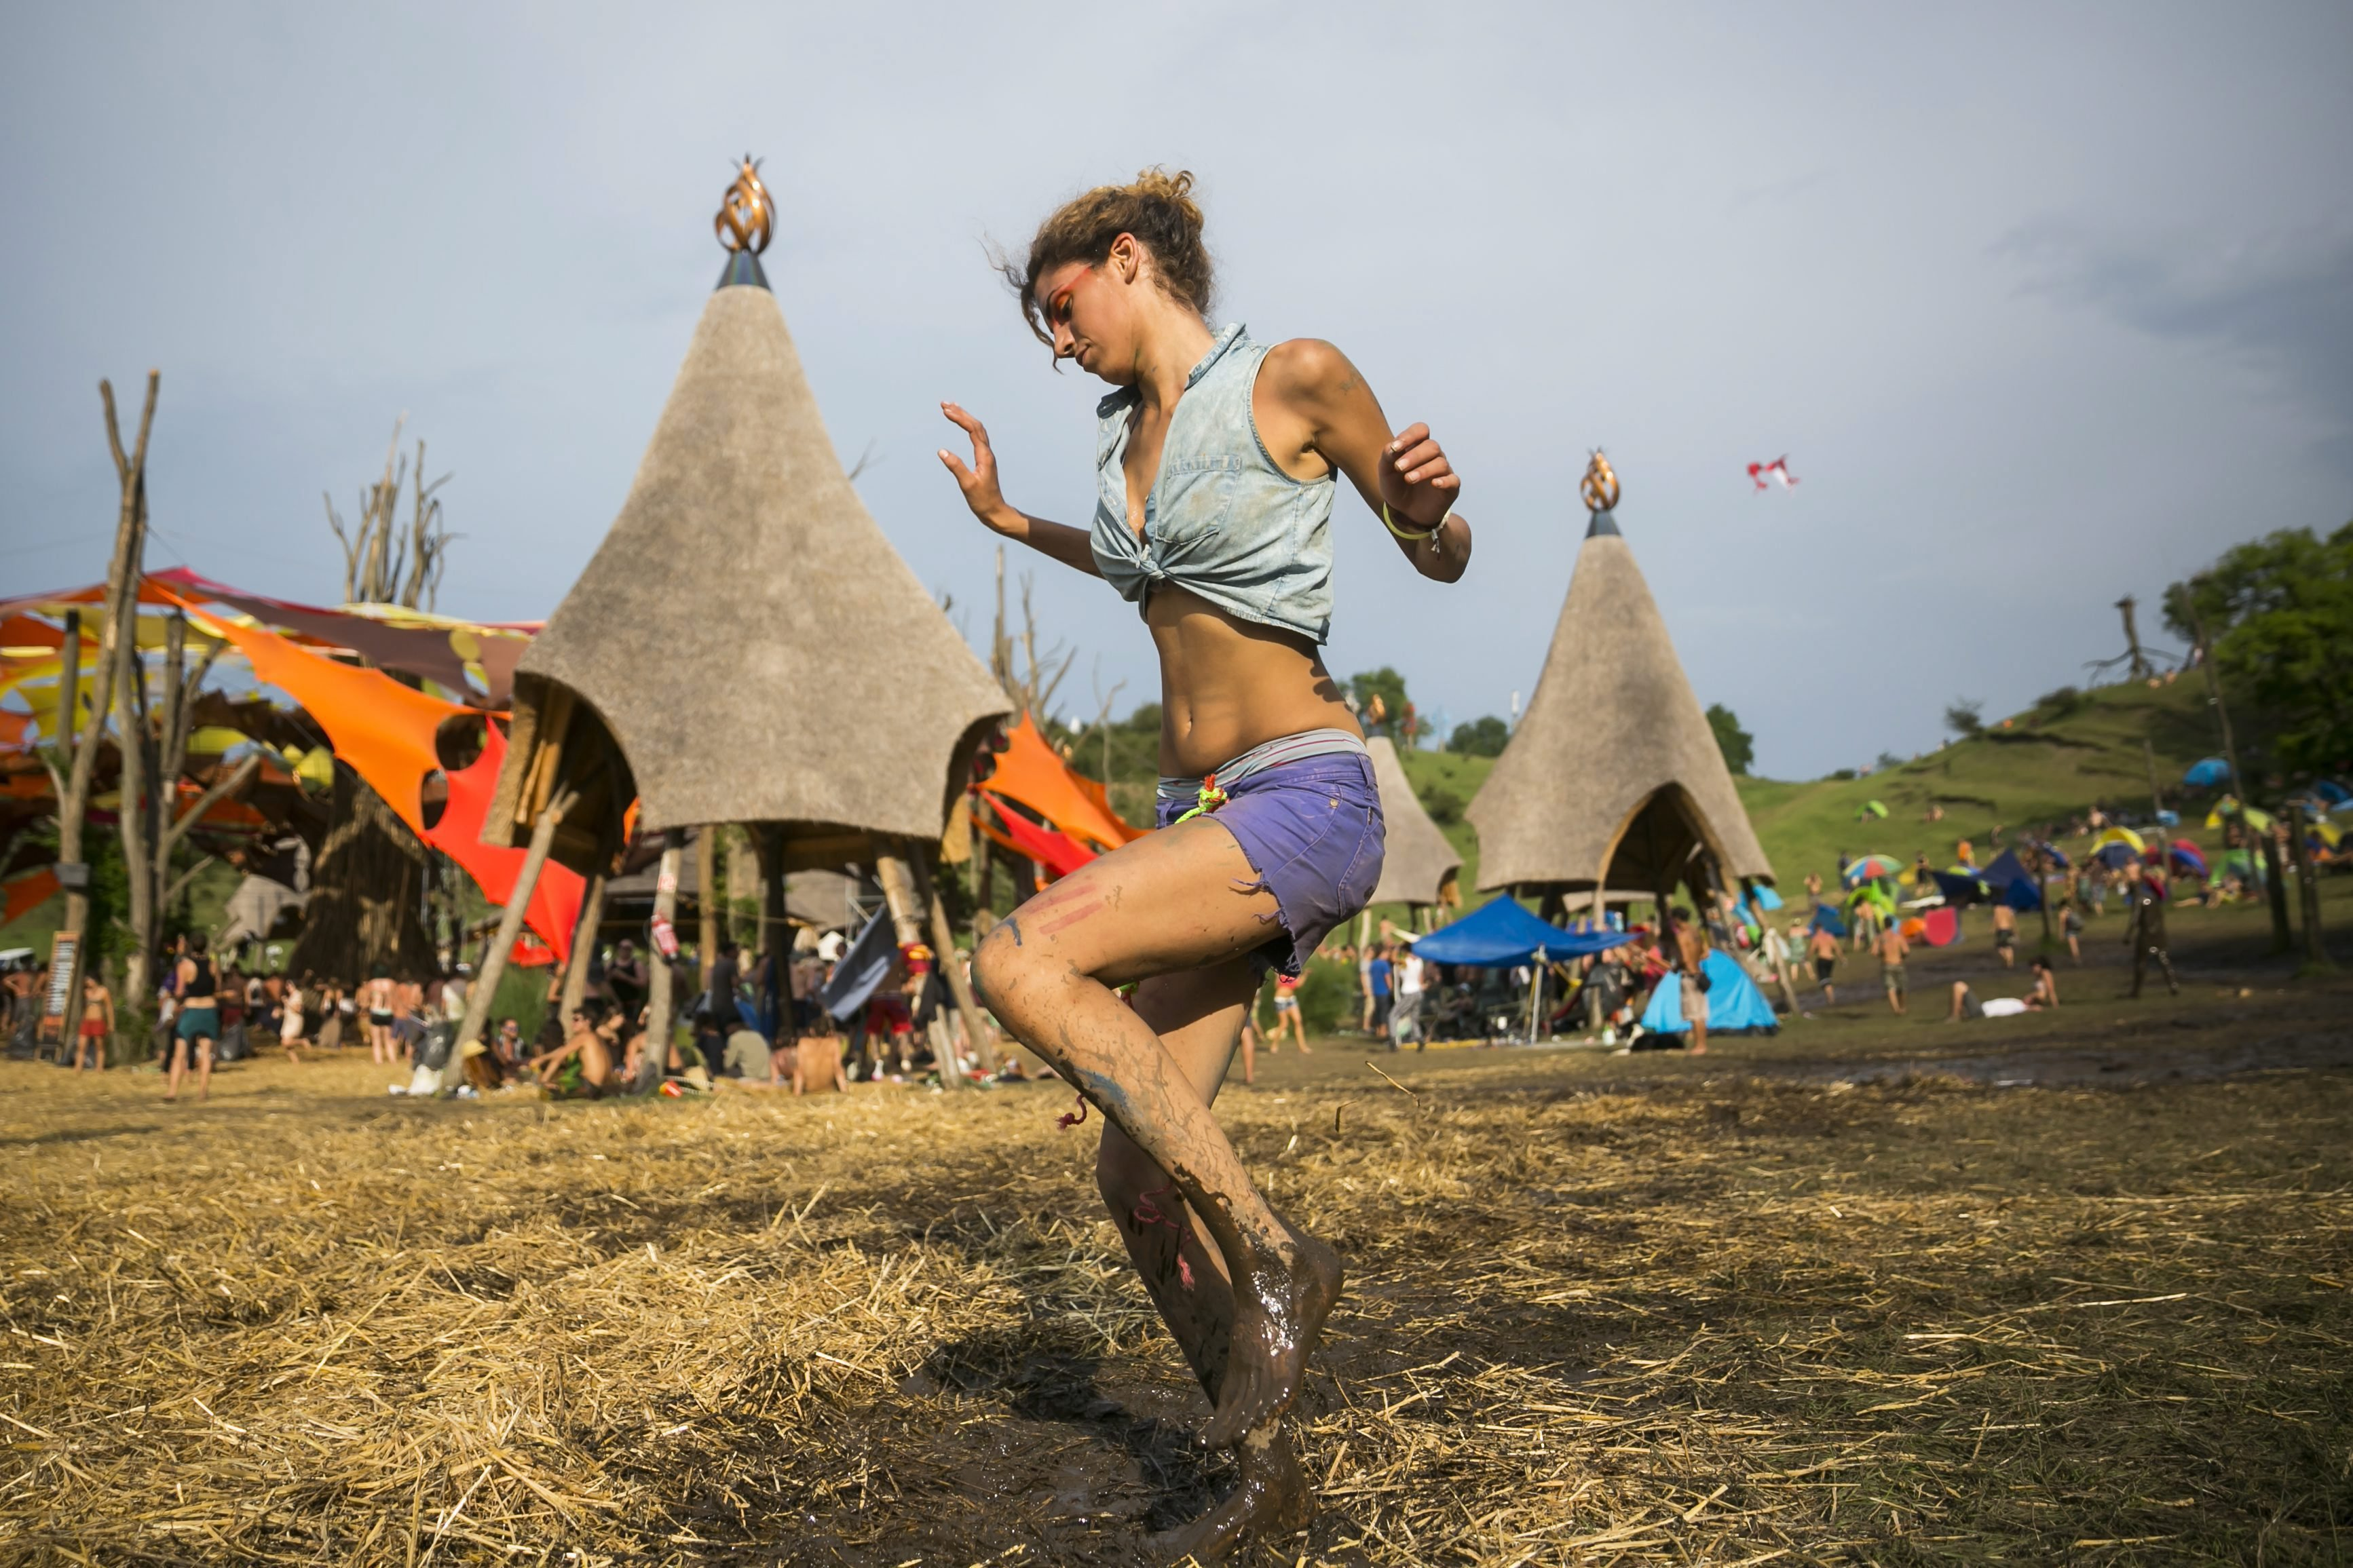 Aug. 2, 2014. A young woman dances during the 2014 O.Z.O.R.A. Festival, described by organizers as the Psychedelic Tribal Gathering, near the village of Ozora, south of Budapest, Hungary.